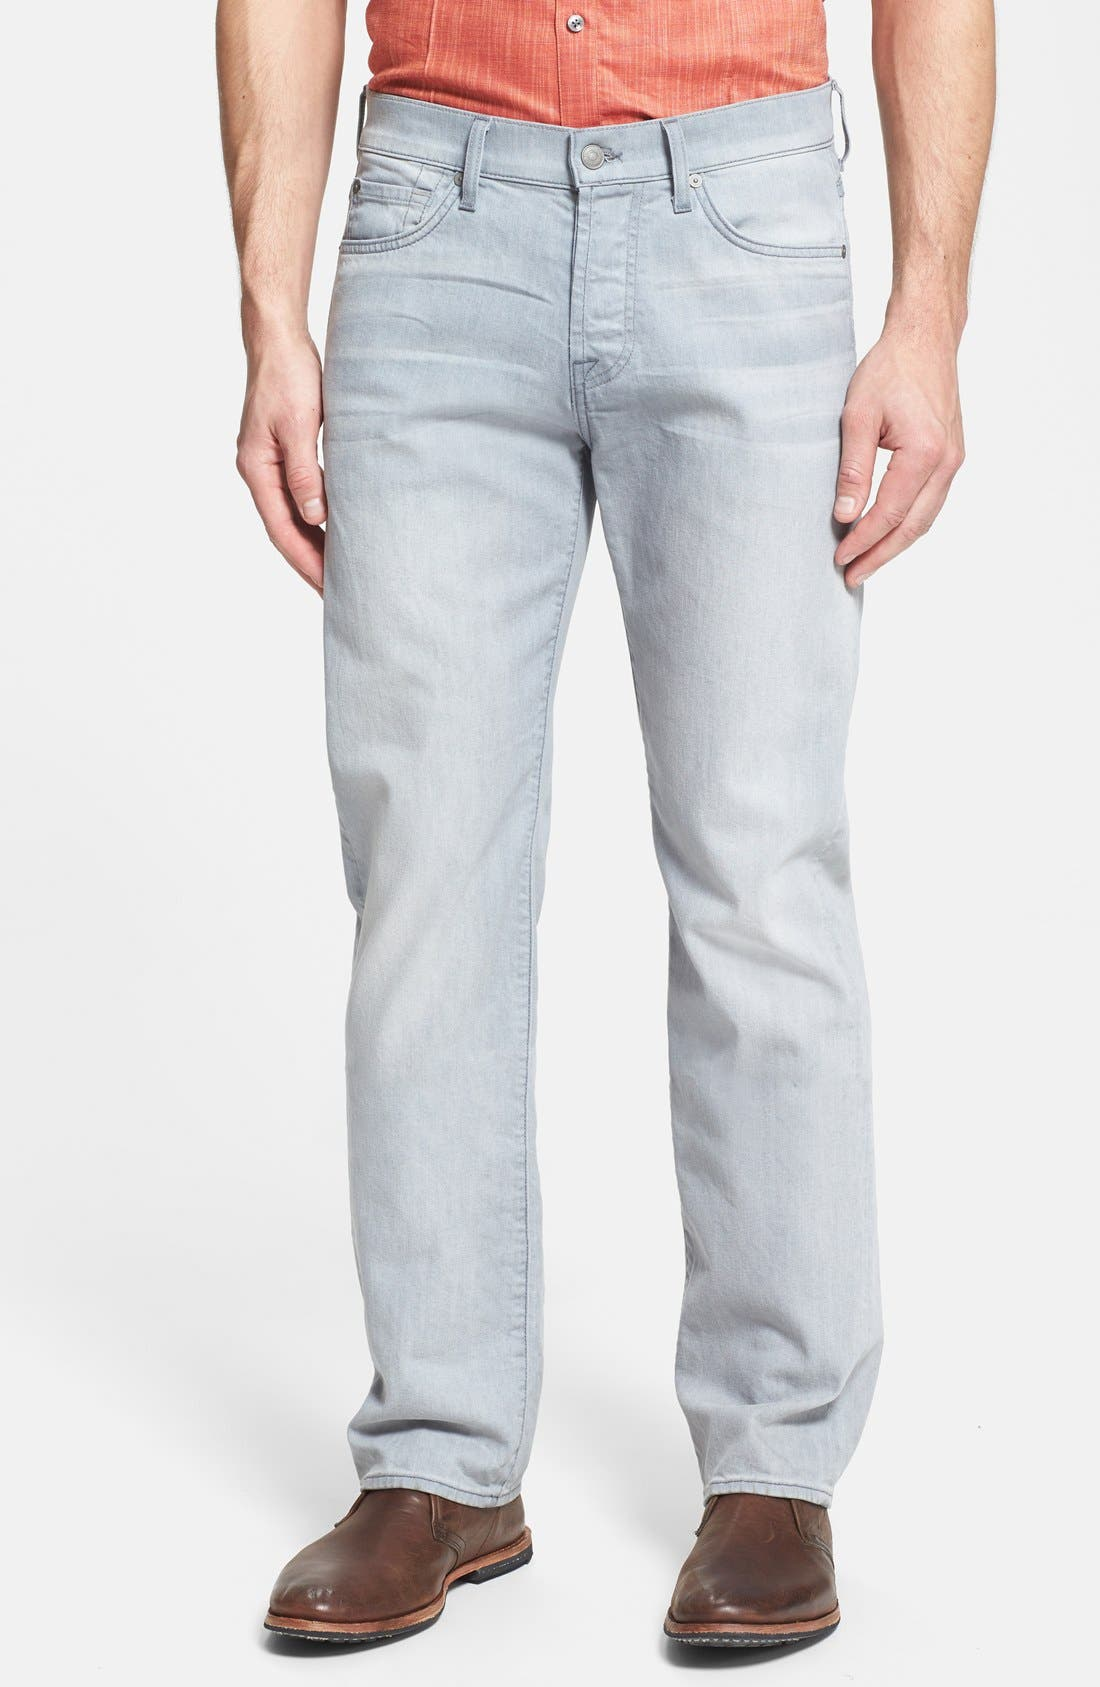 Alternate Image 1 Selected - 7 For All Mankind® 'Standard' Straight Leg Jeans (Ghost Grey)